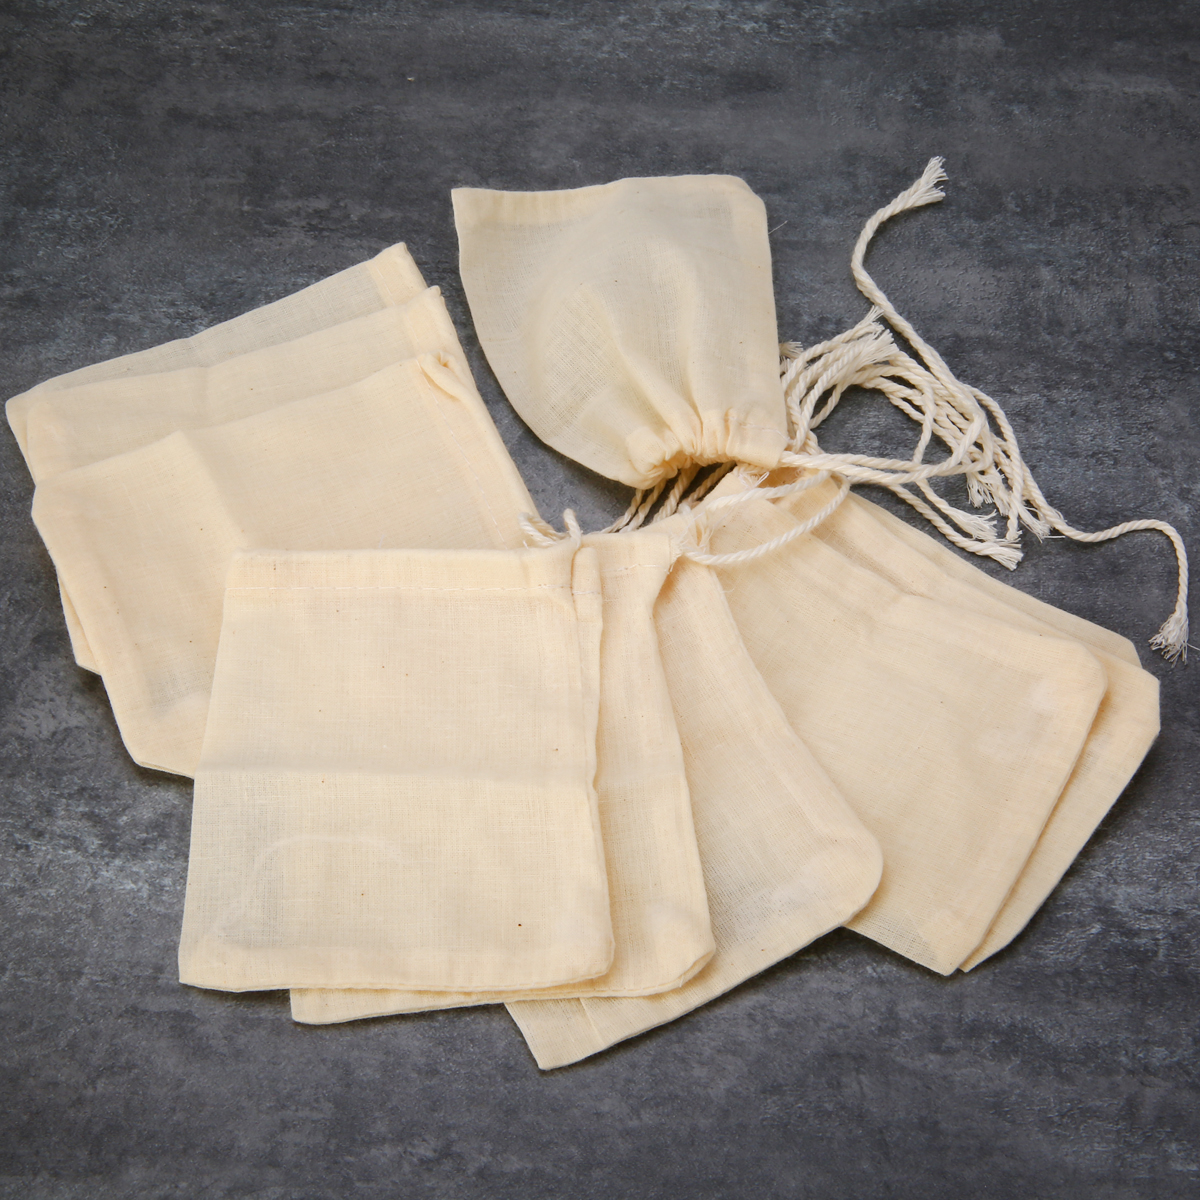 10pcs Cotton Teabags Strainer Tea Bags With String For Spice Food Separate Filter Bag 8 X 10cm